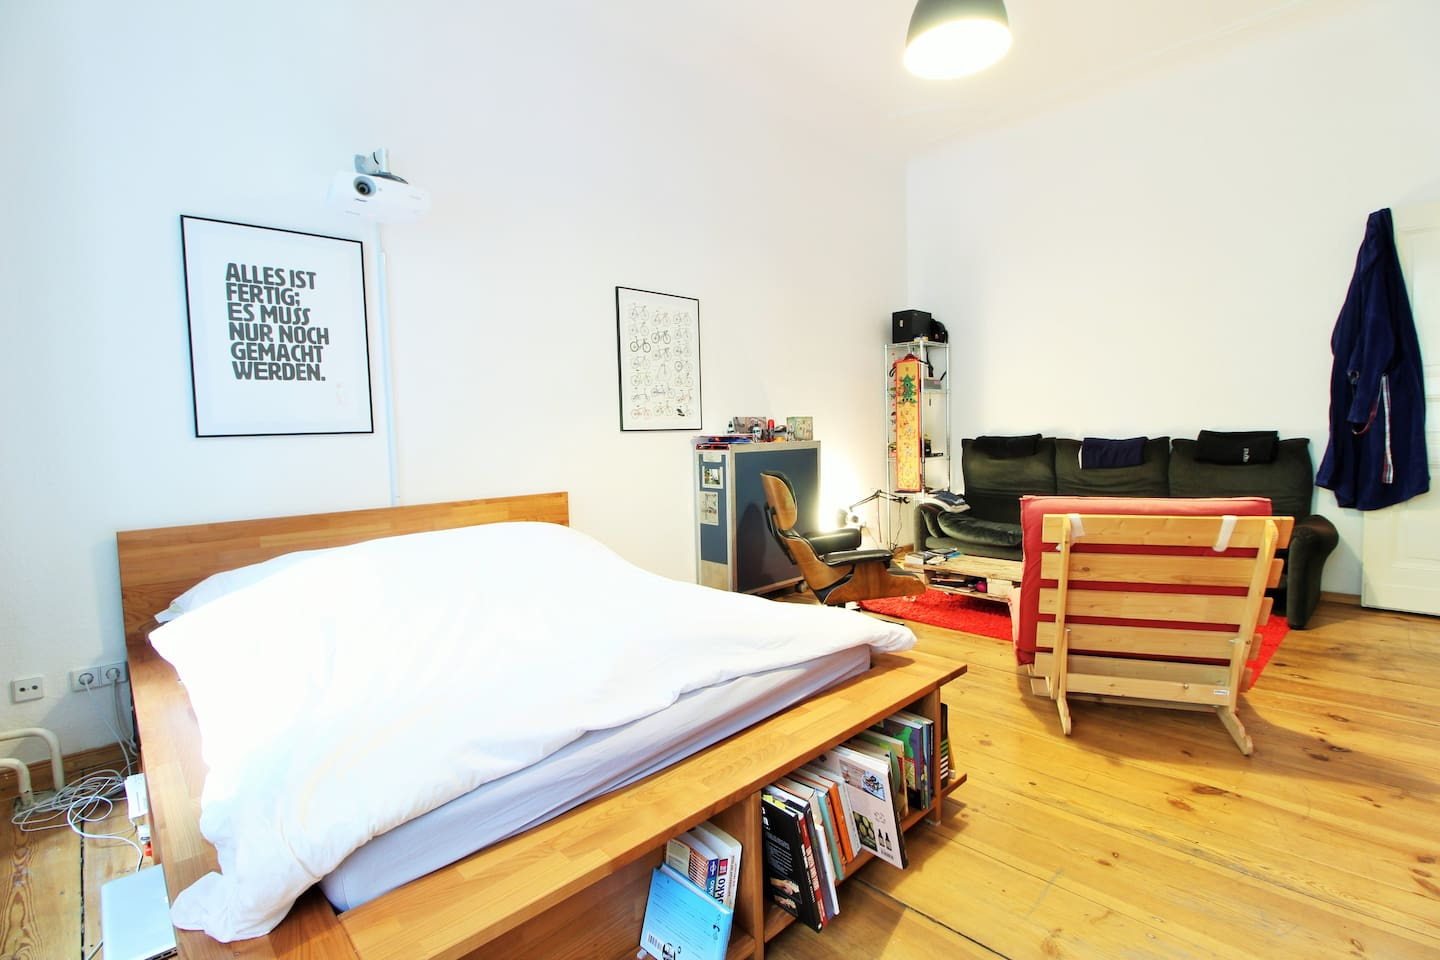 The living area is very spacious and has nice wooden floors.